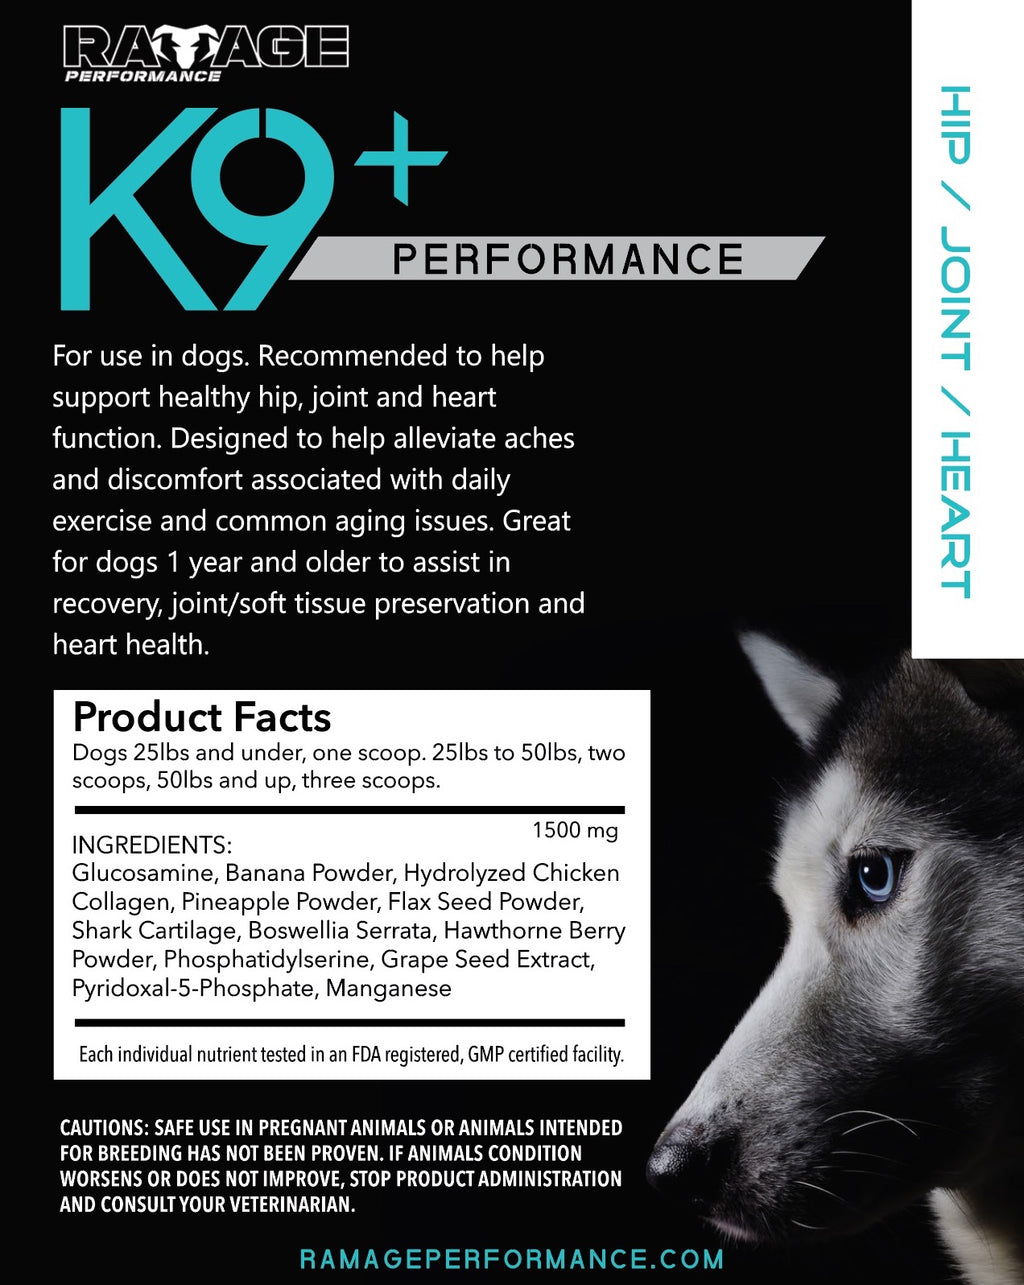 K9+ Performance for dogs